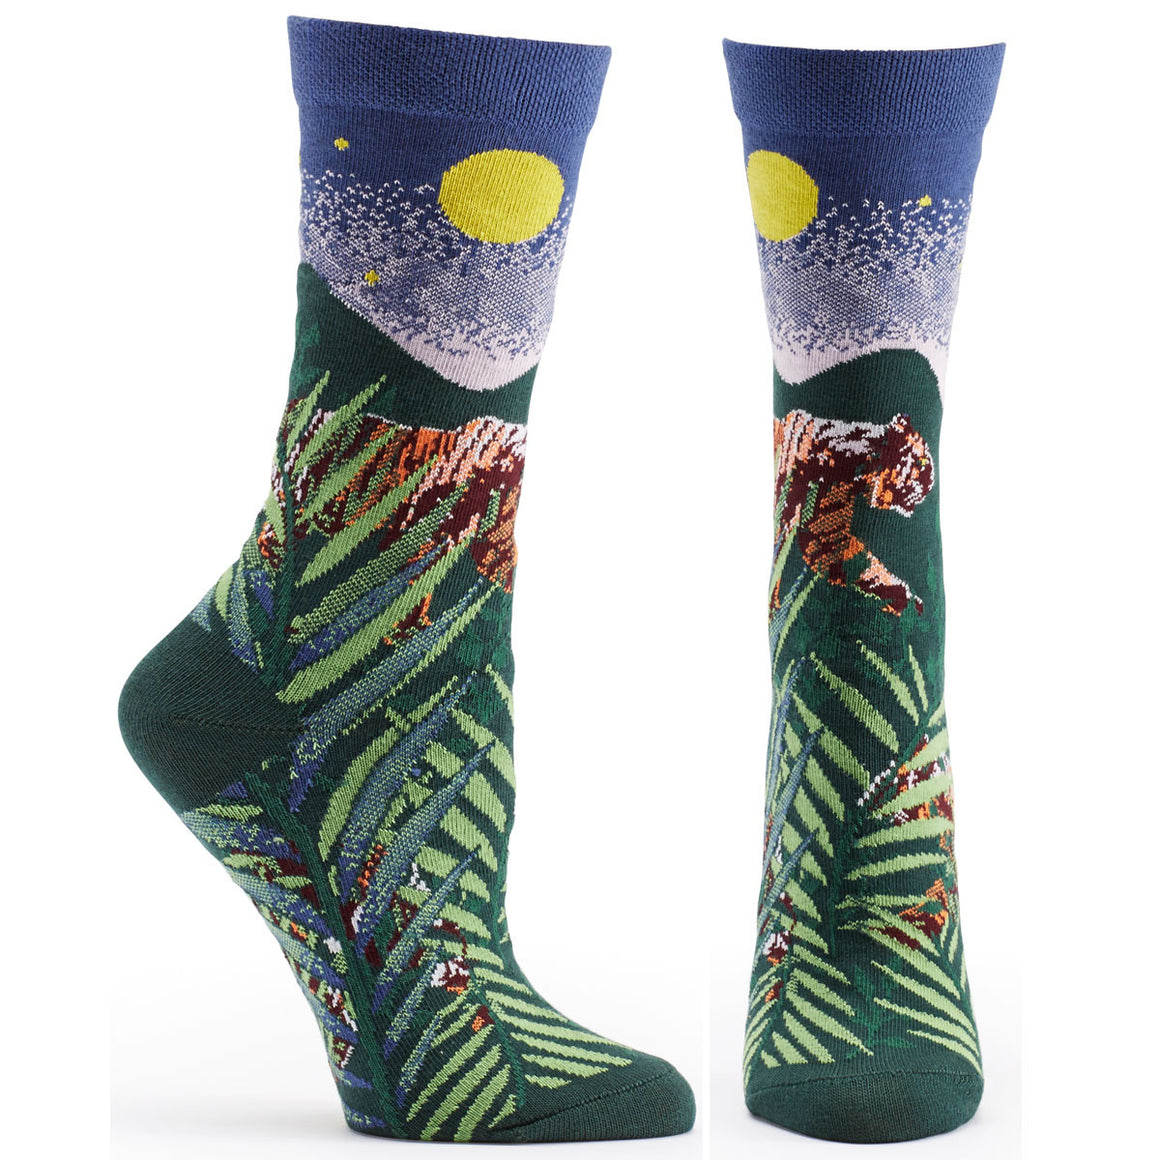 Endangered Cats Tiger Sock in Navy size 9-11 womens crew from ozone socks